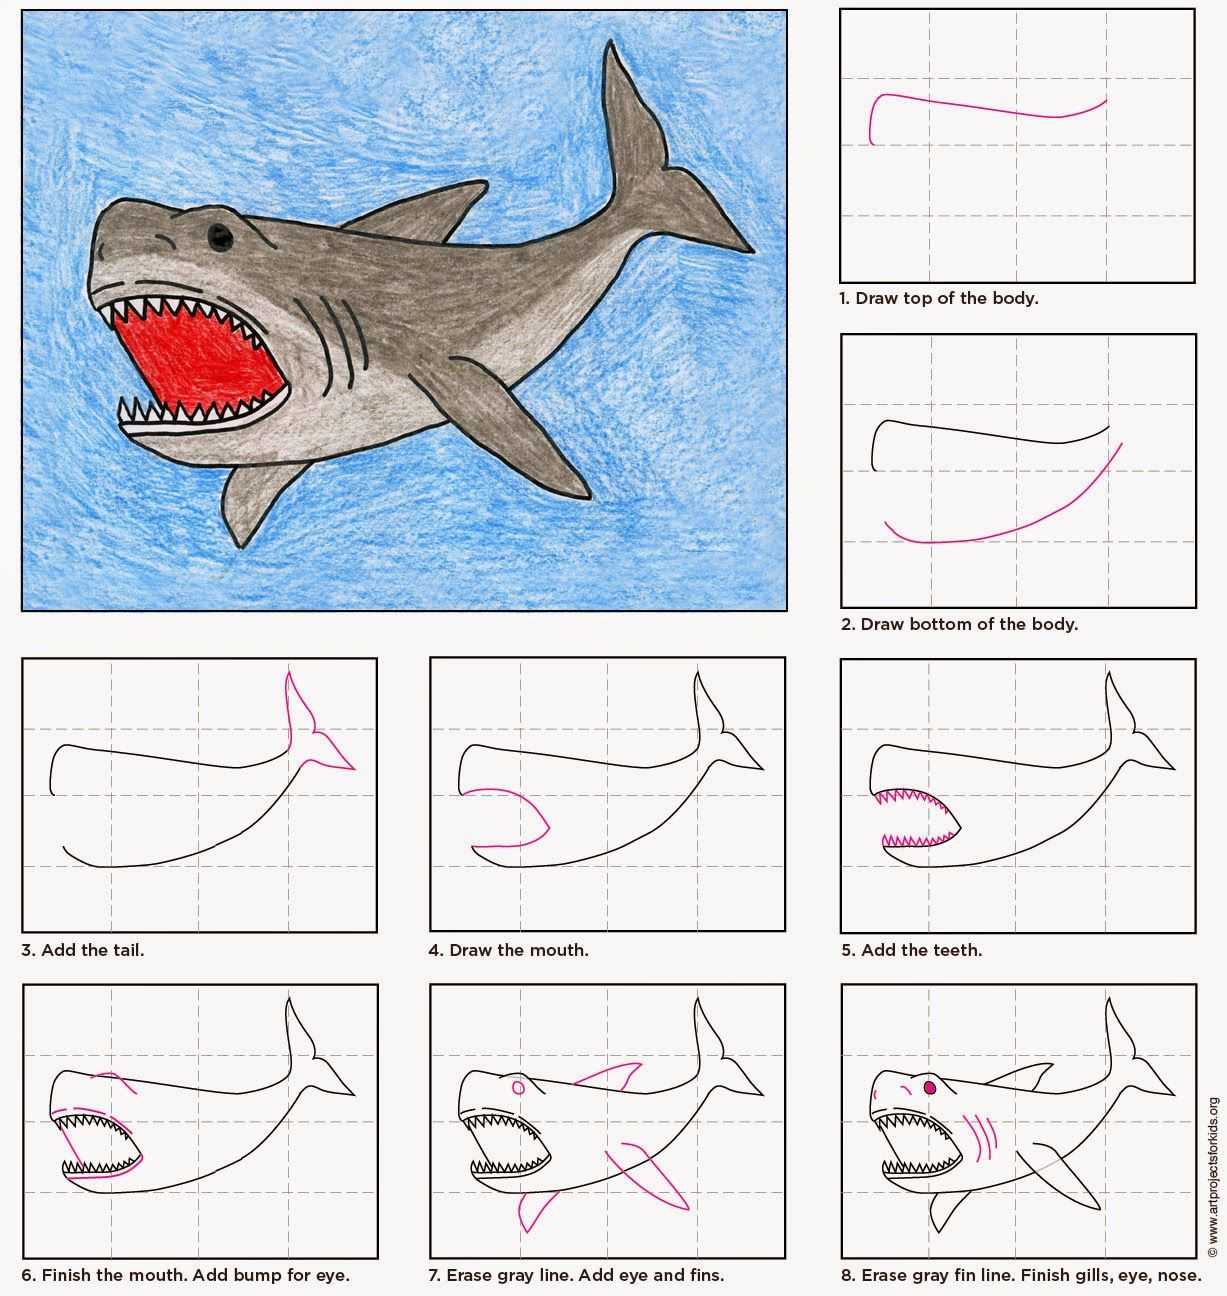 Scribble Drawing Kids : Art projects for kids draw a megalodon shark ideas